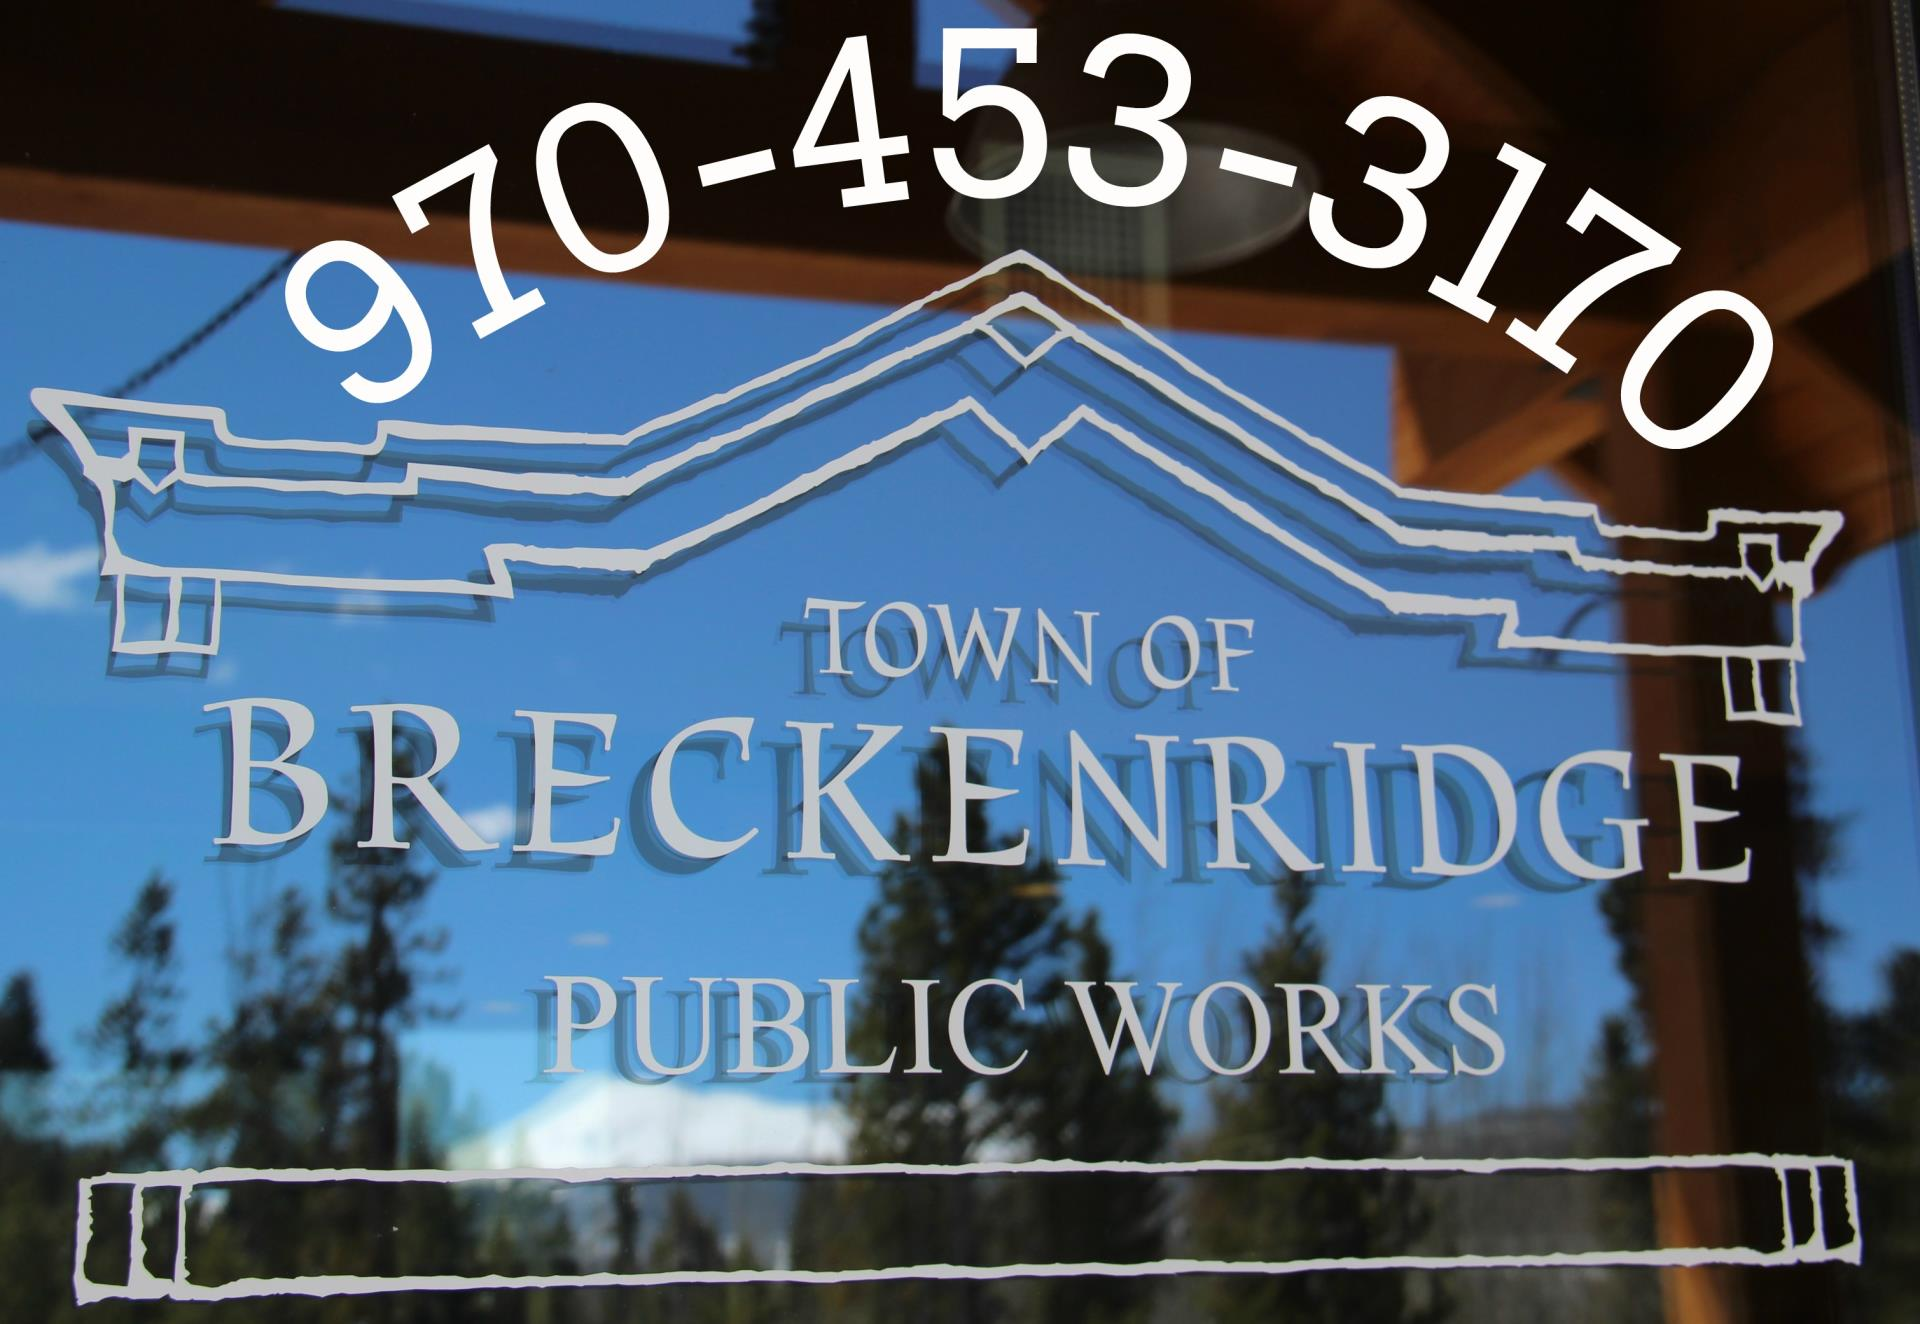 Public Works office phone number